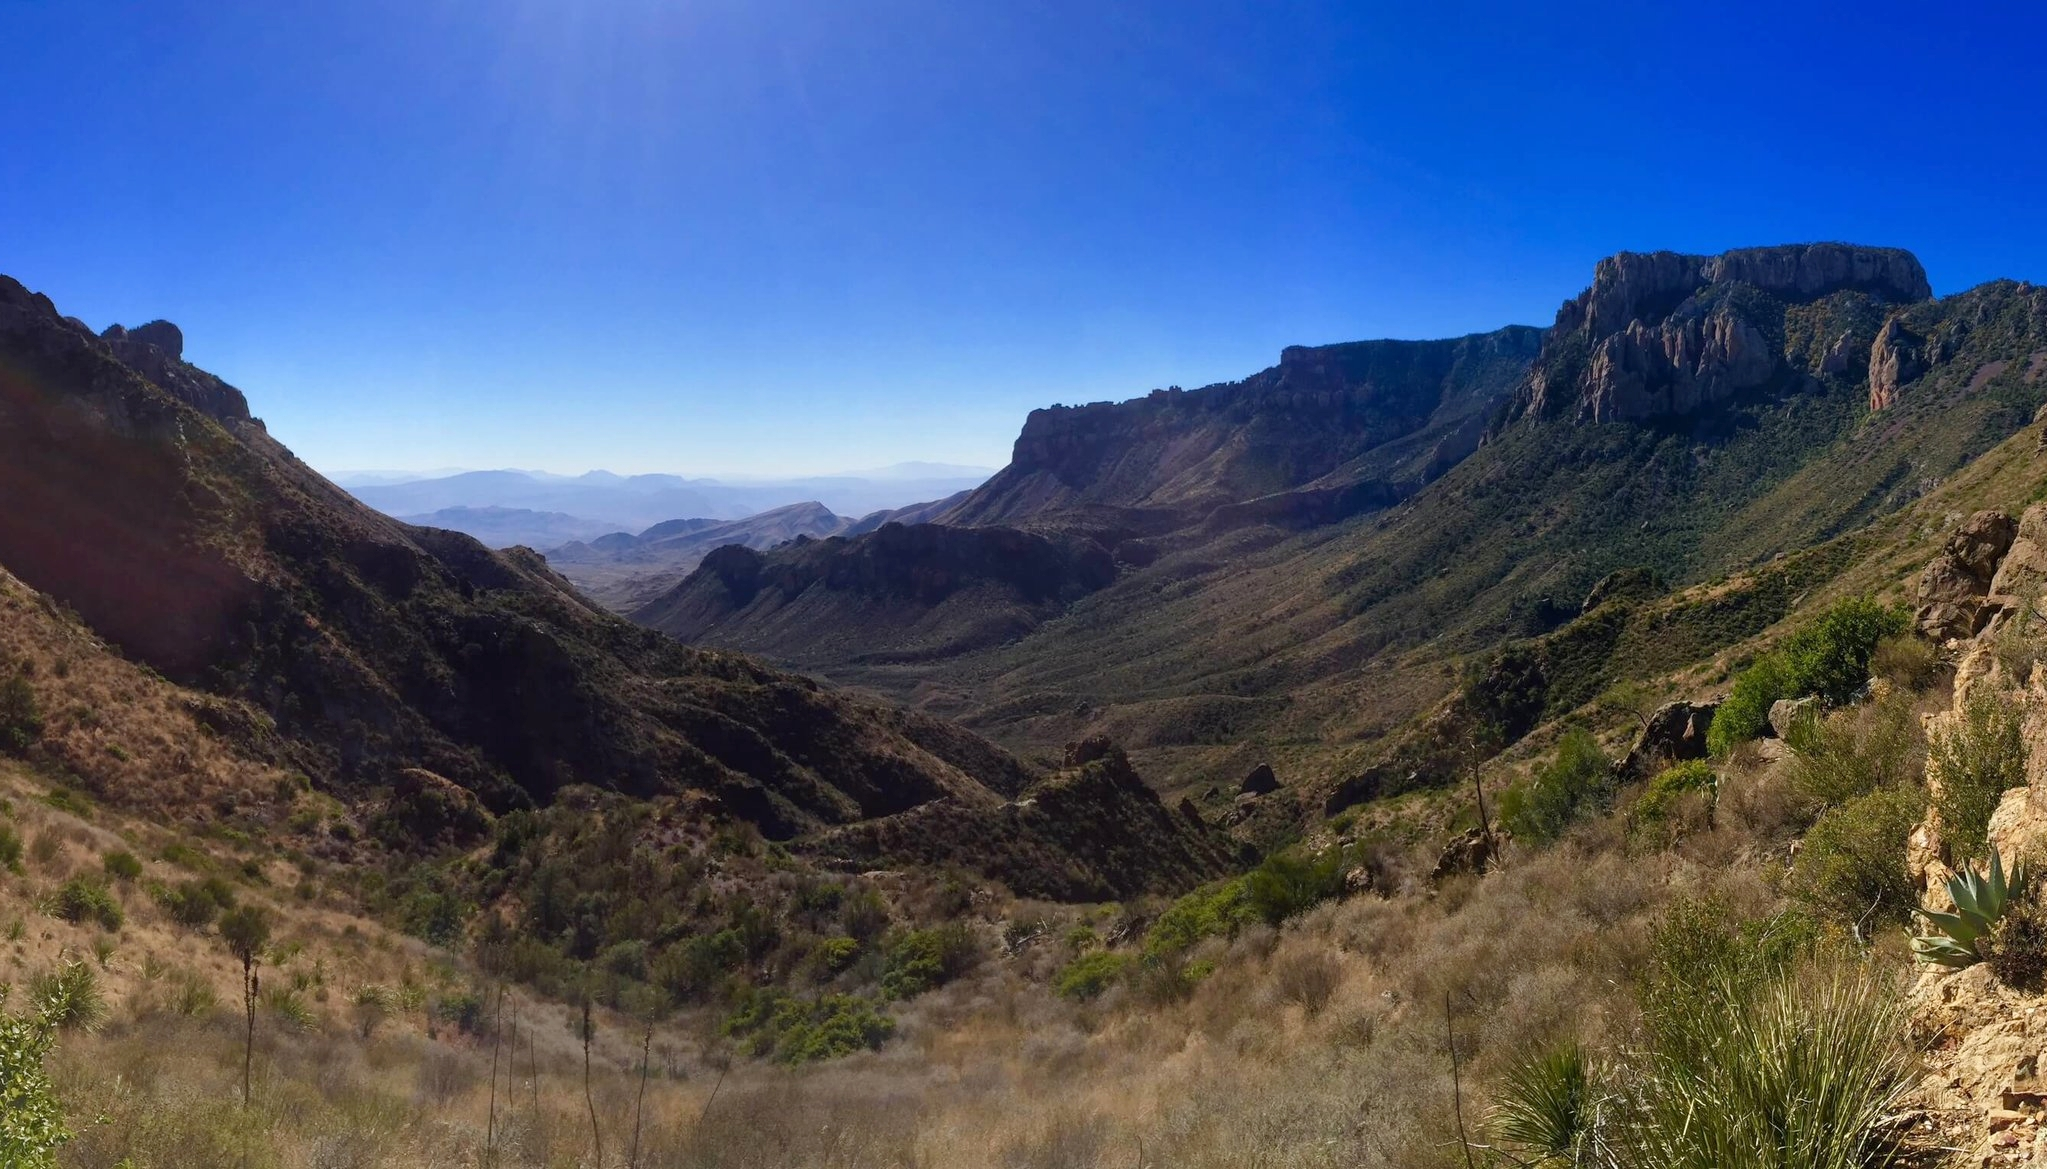 Canyon view from the Lost Mine Trial of Big Bend National Park.